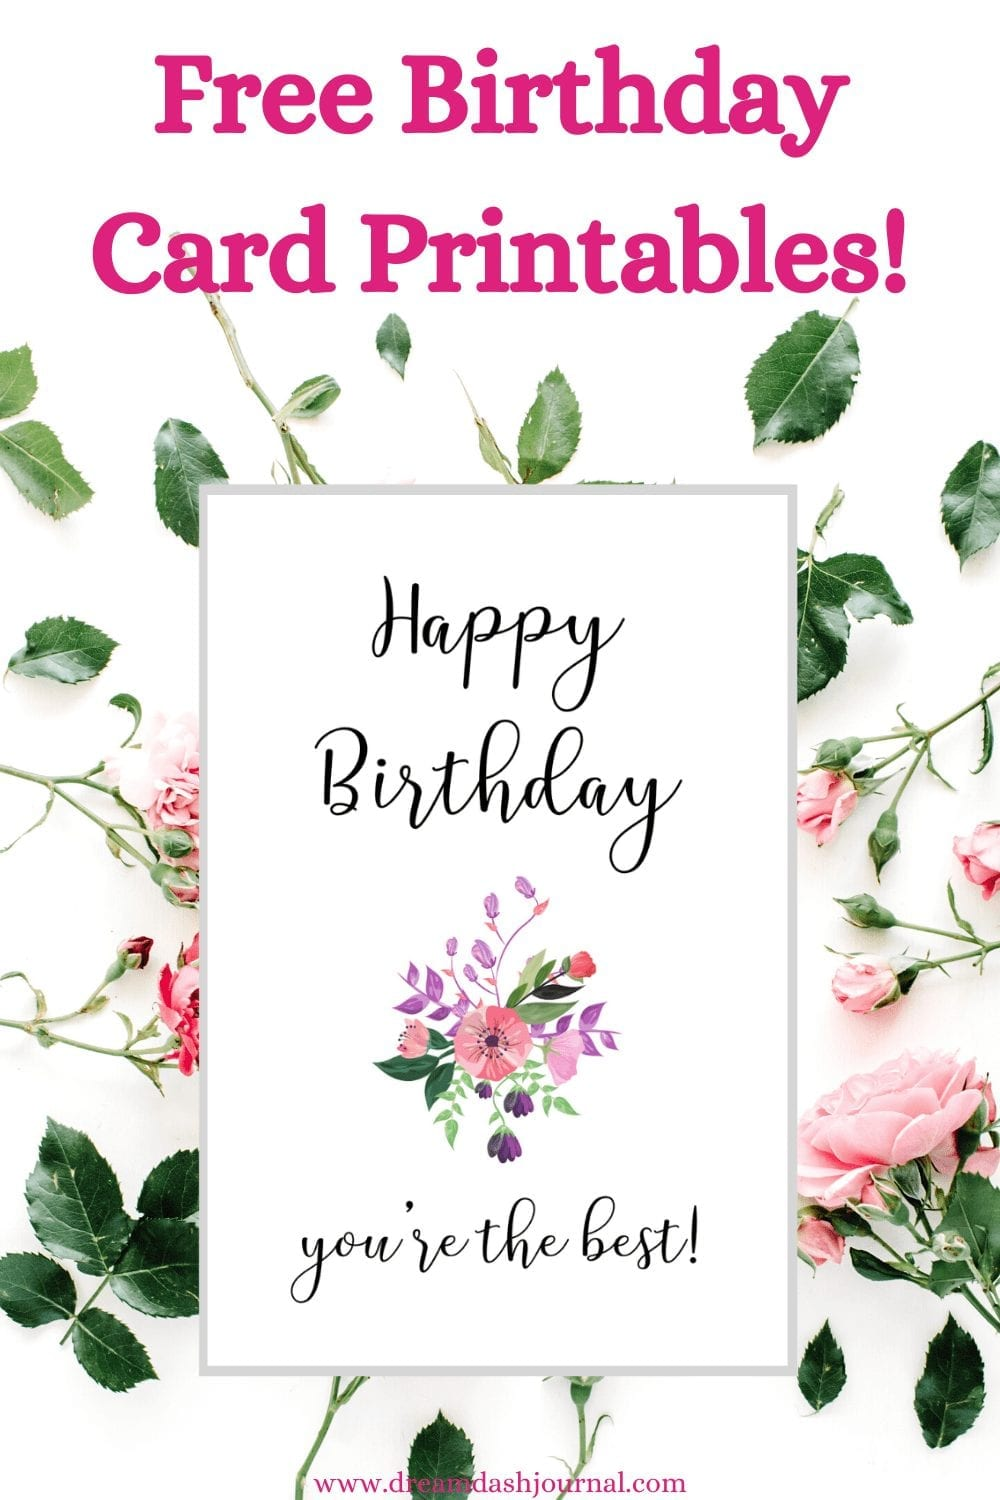 Cute Printable Birthday Cards For Her {Pretty & Free PDF Download!}